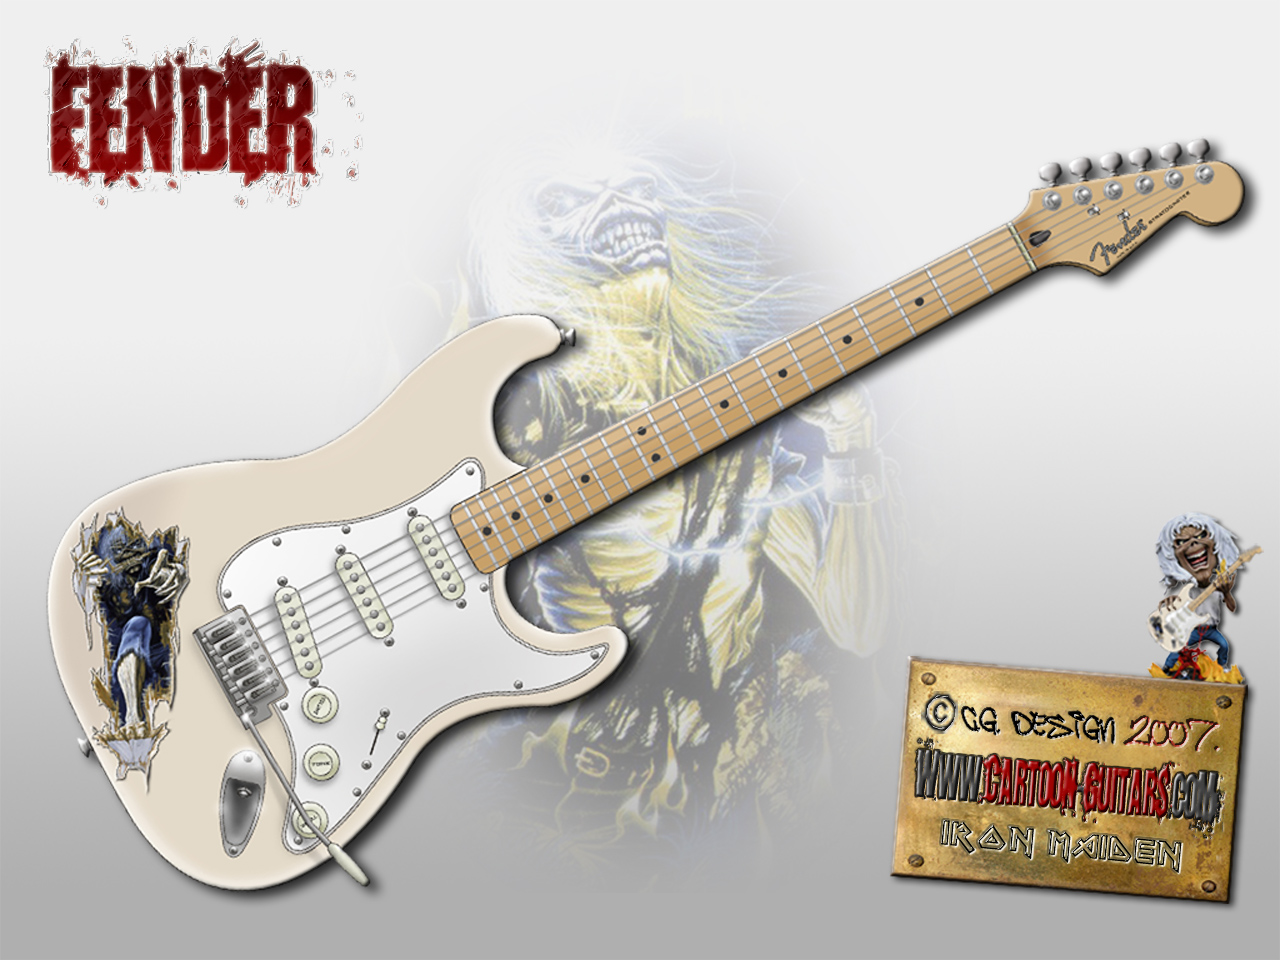 fender_iron_maiden_tribute_20090315_1235841255.jpg